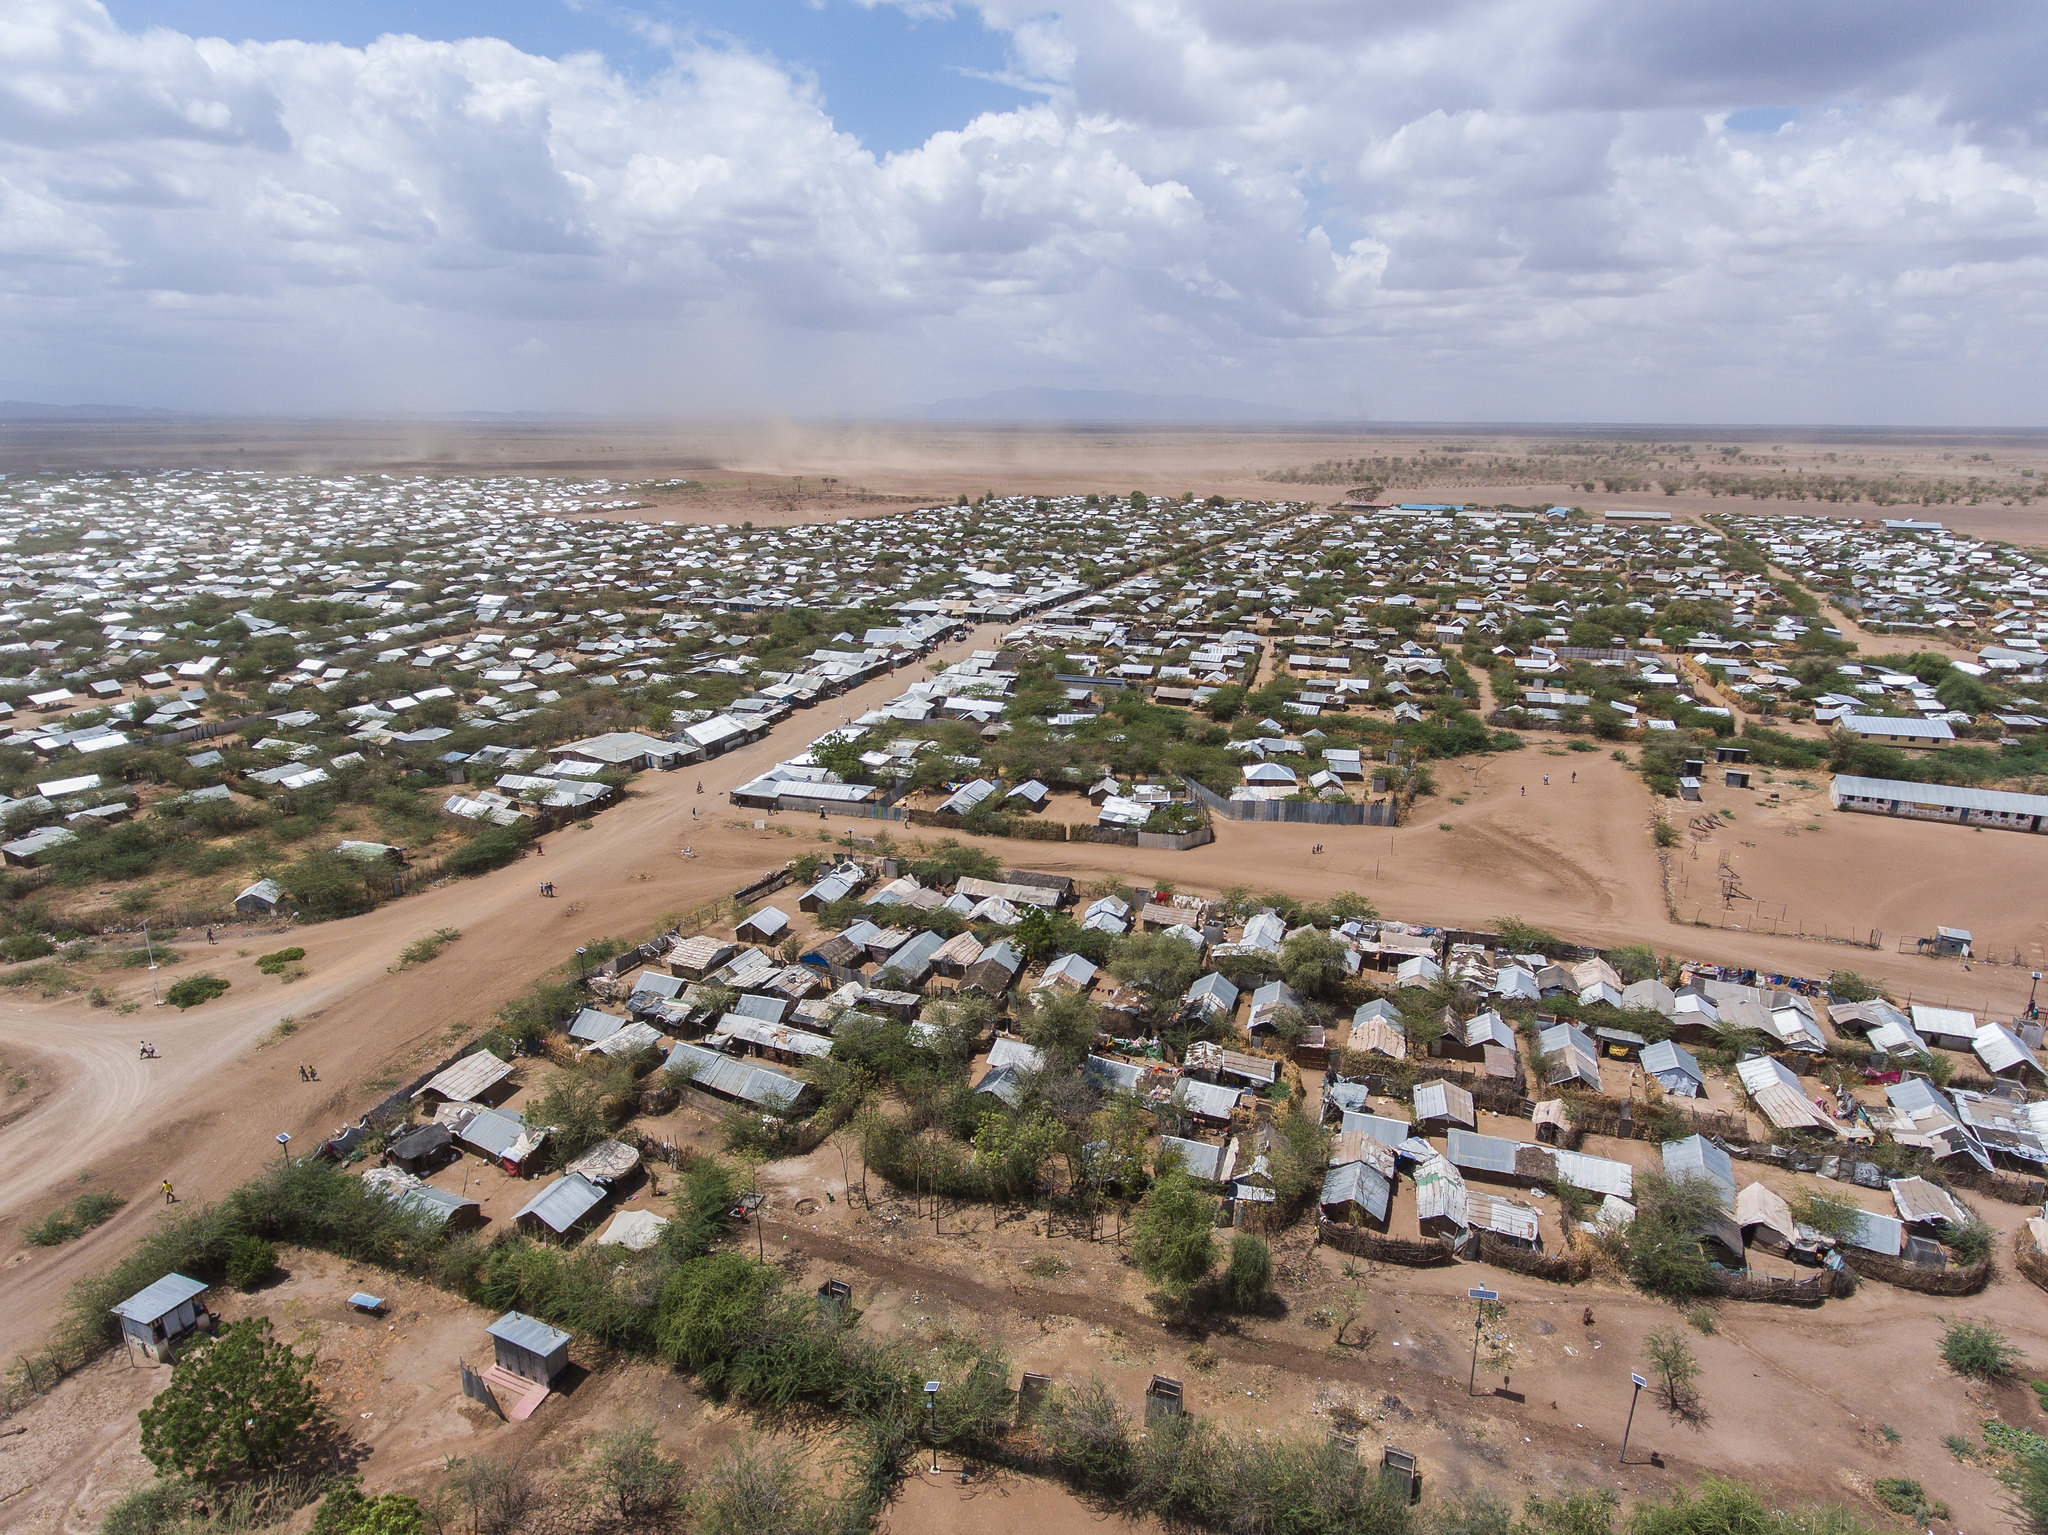 An aerial view of a section of Kakuma Refugee Camp.